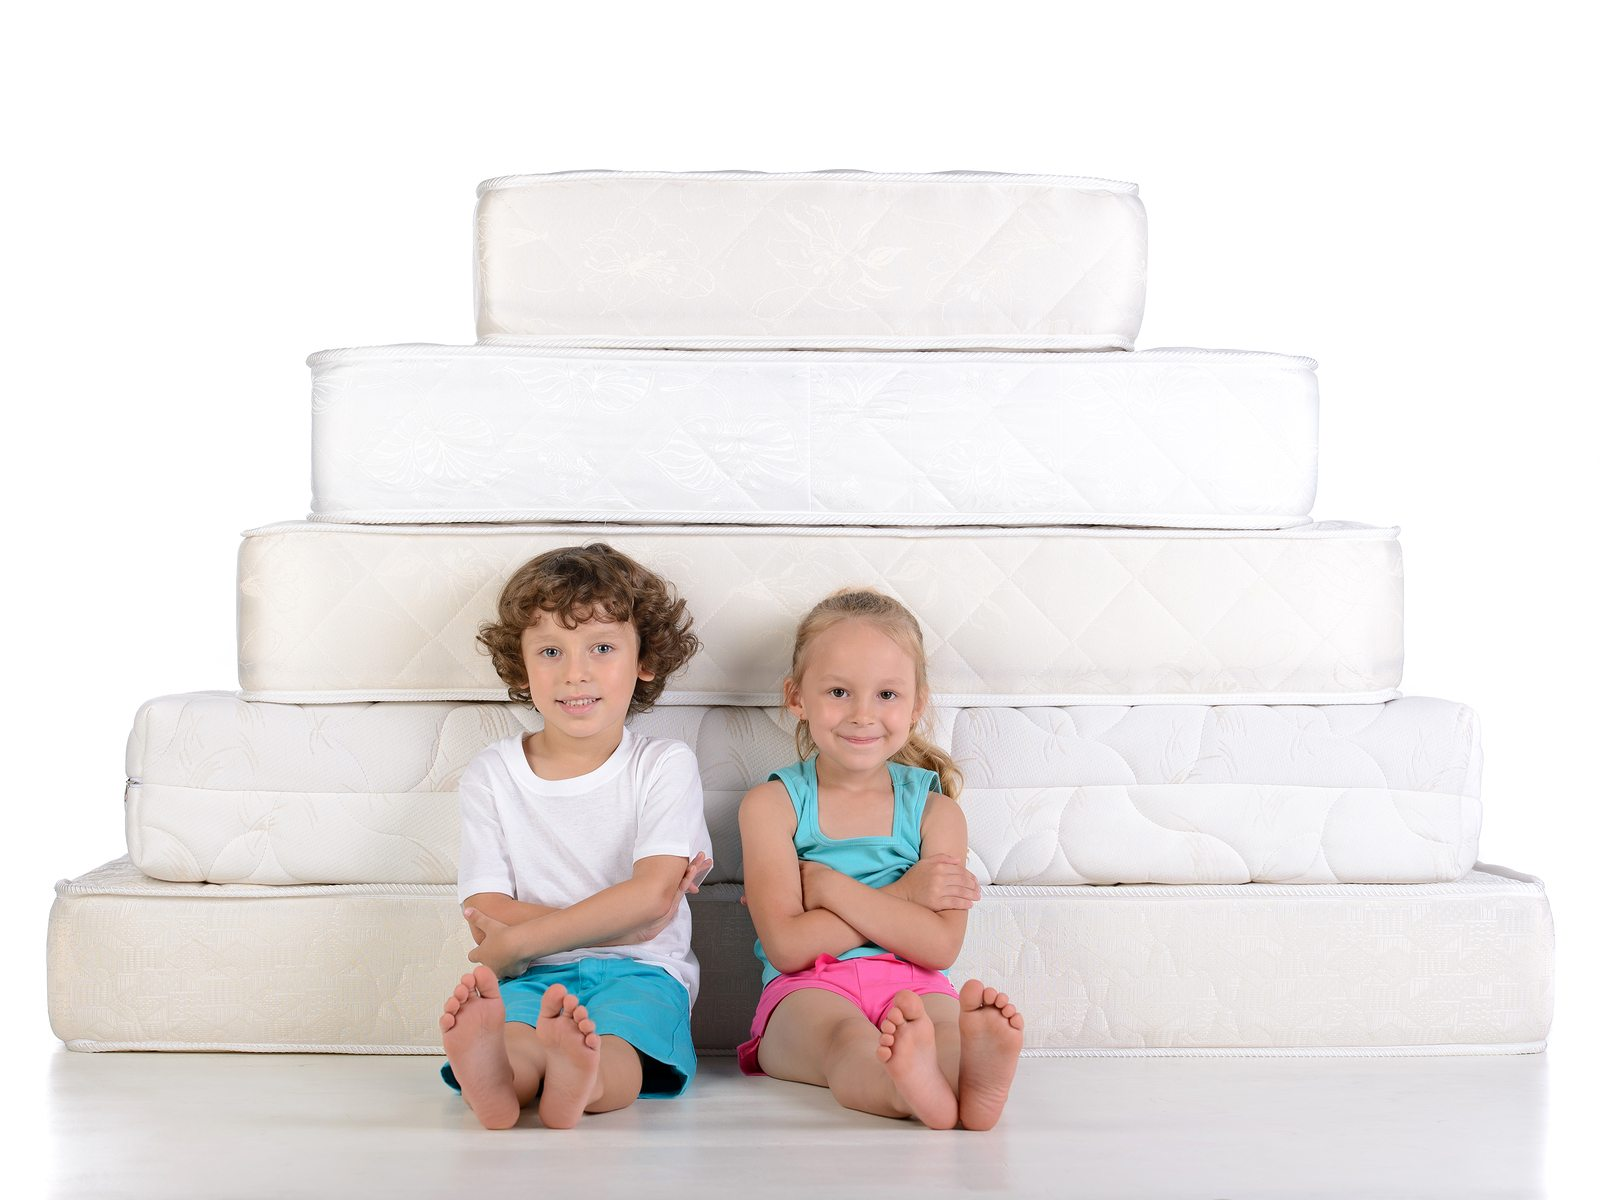 Best Mattress For Kids / Toddlers UK 2021